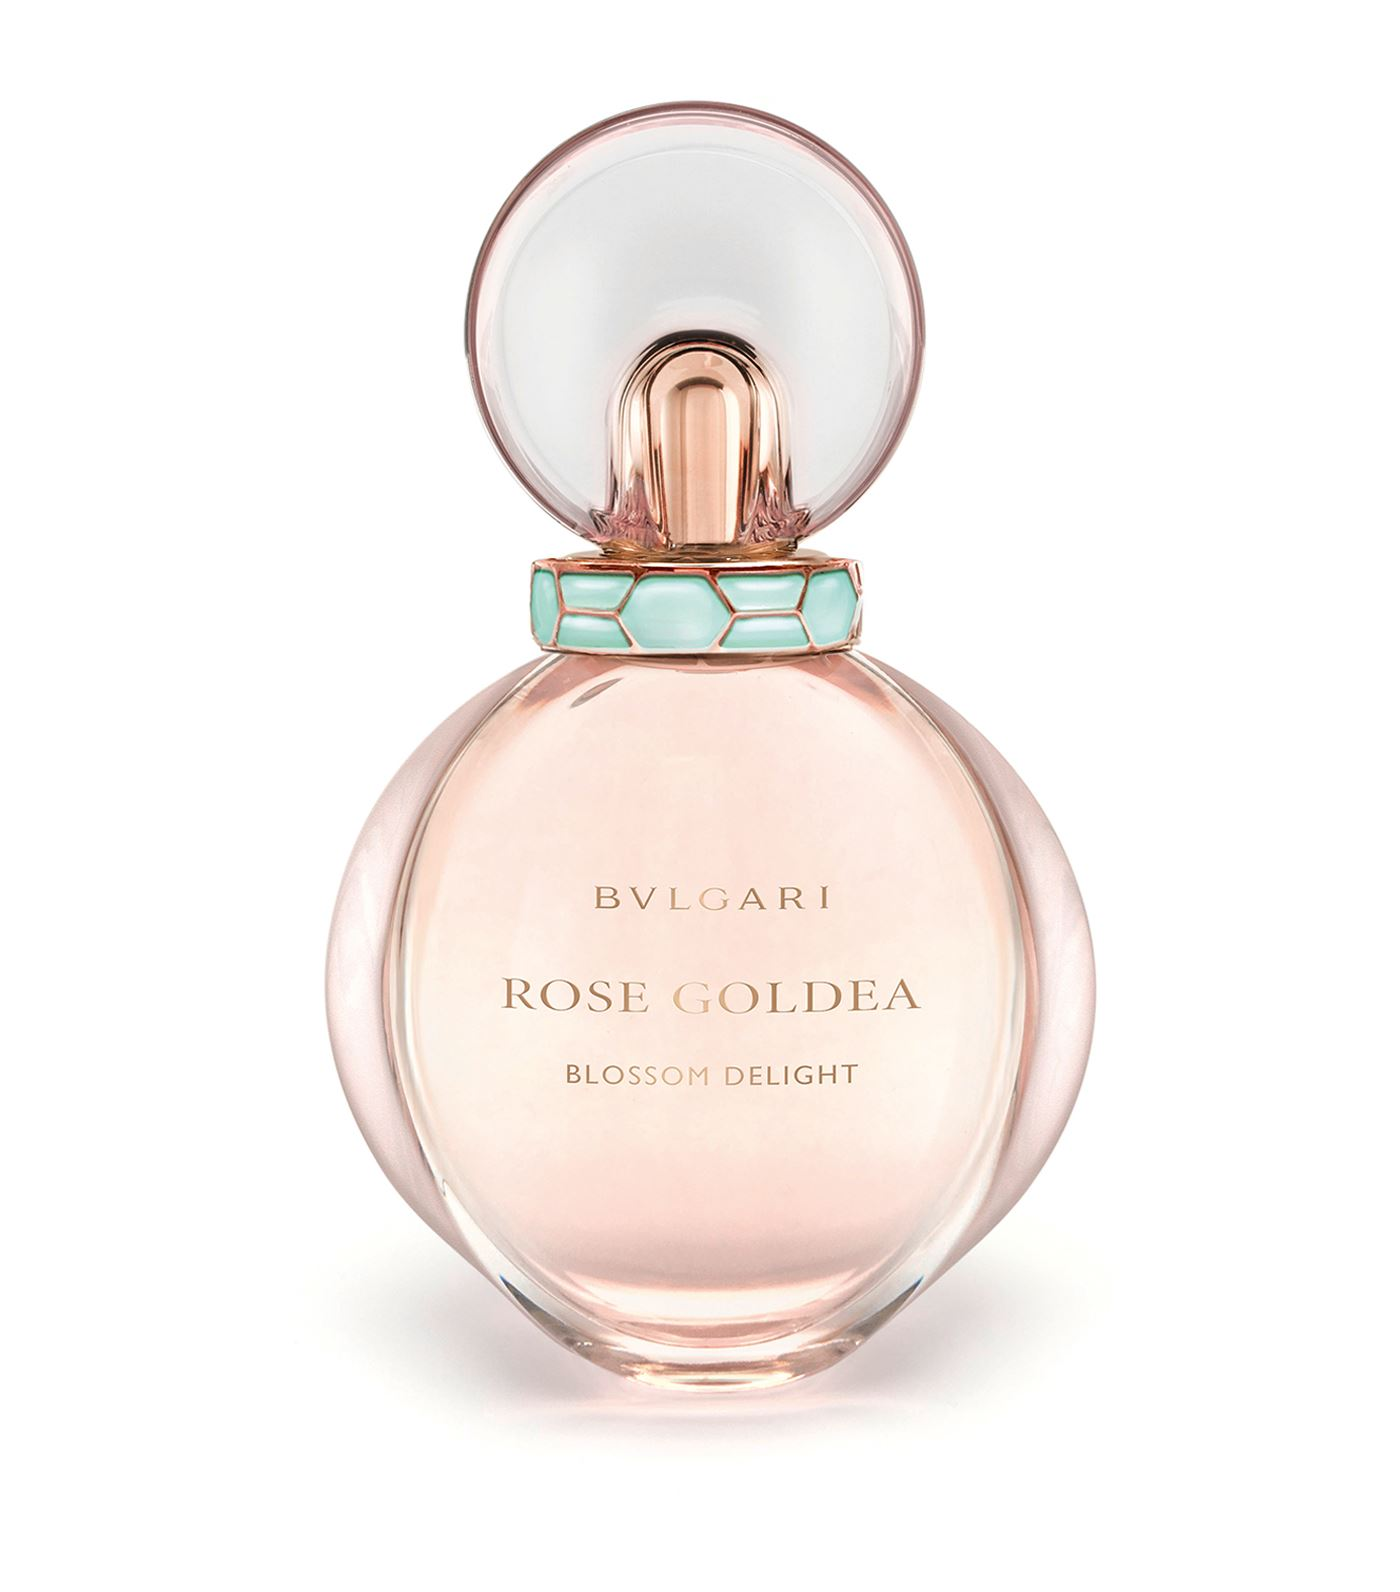 Bvlgari-Rose-Goldea-Blossom-Delight-Flacon